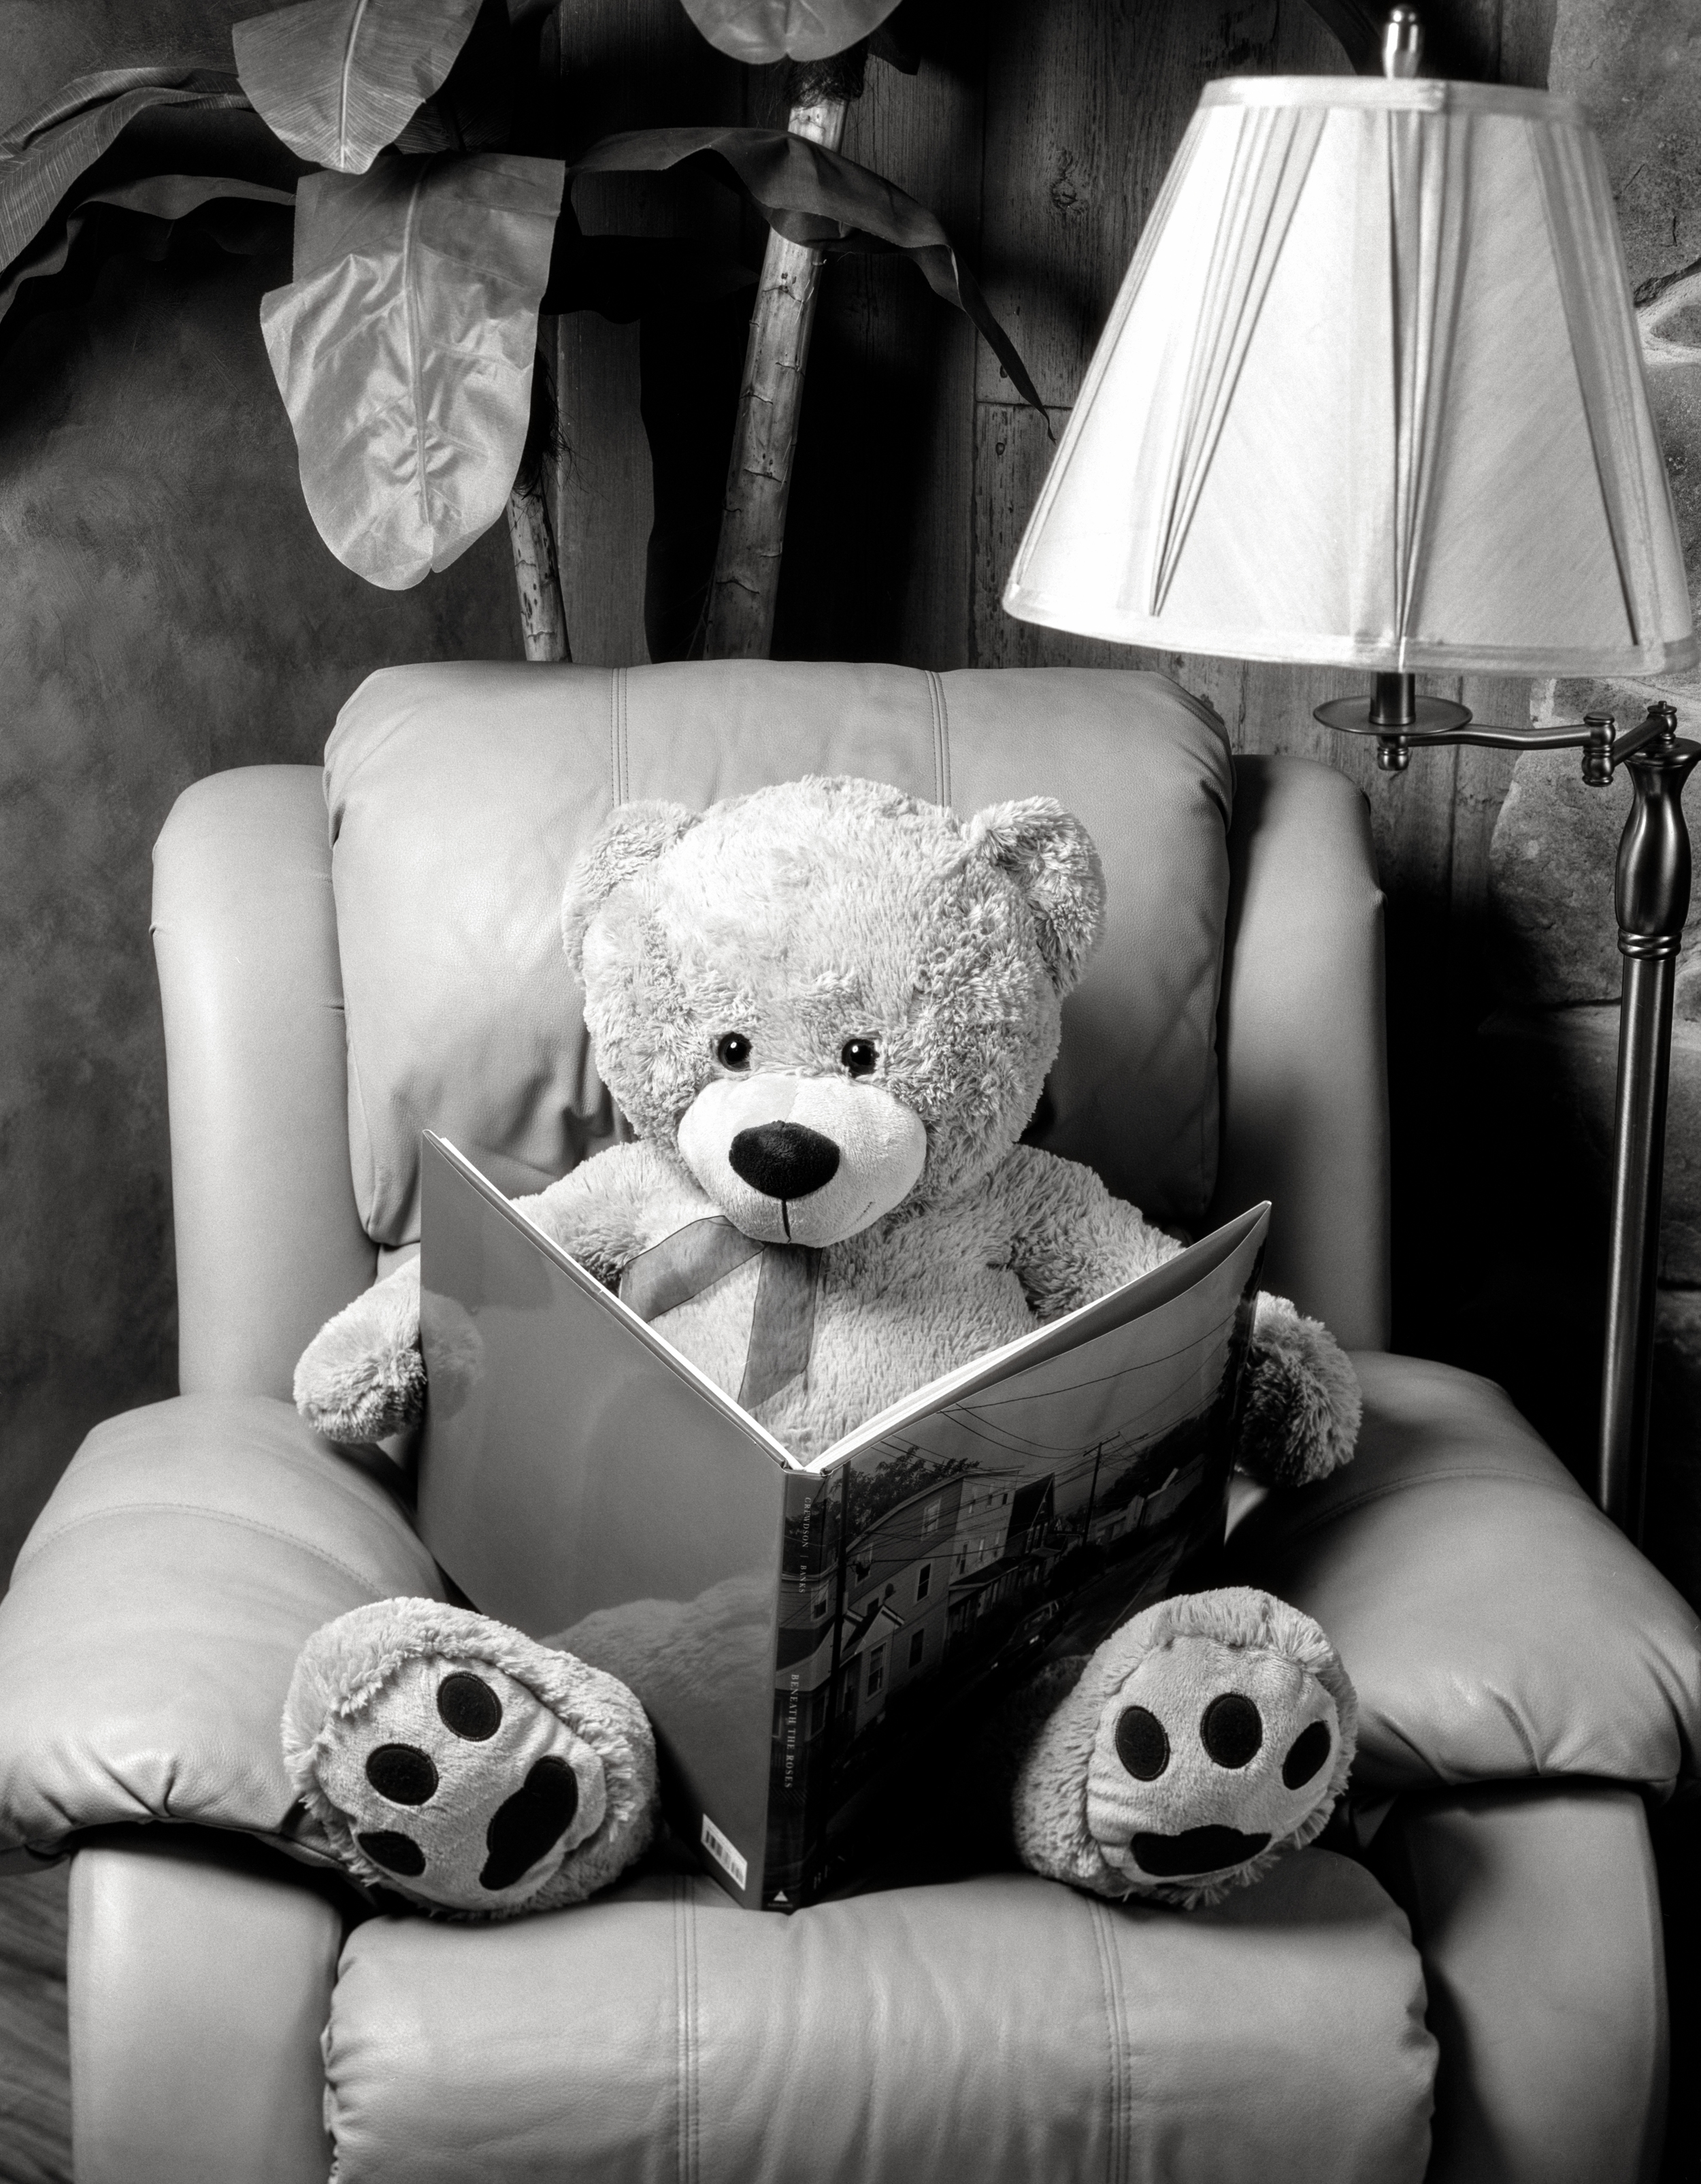 4x5_for_365_project_008_Bearenice_Abbott_Reading_Chair_001.jpg